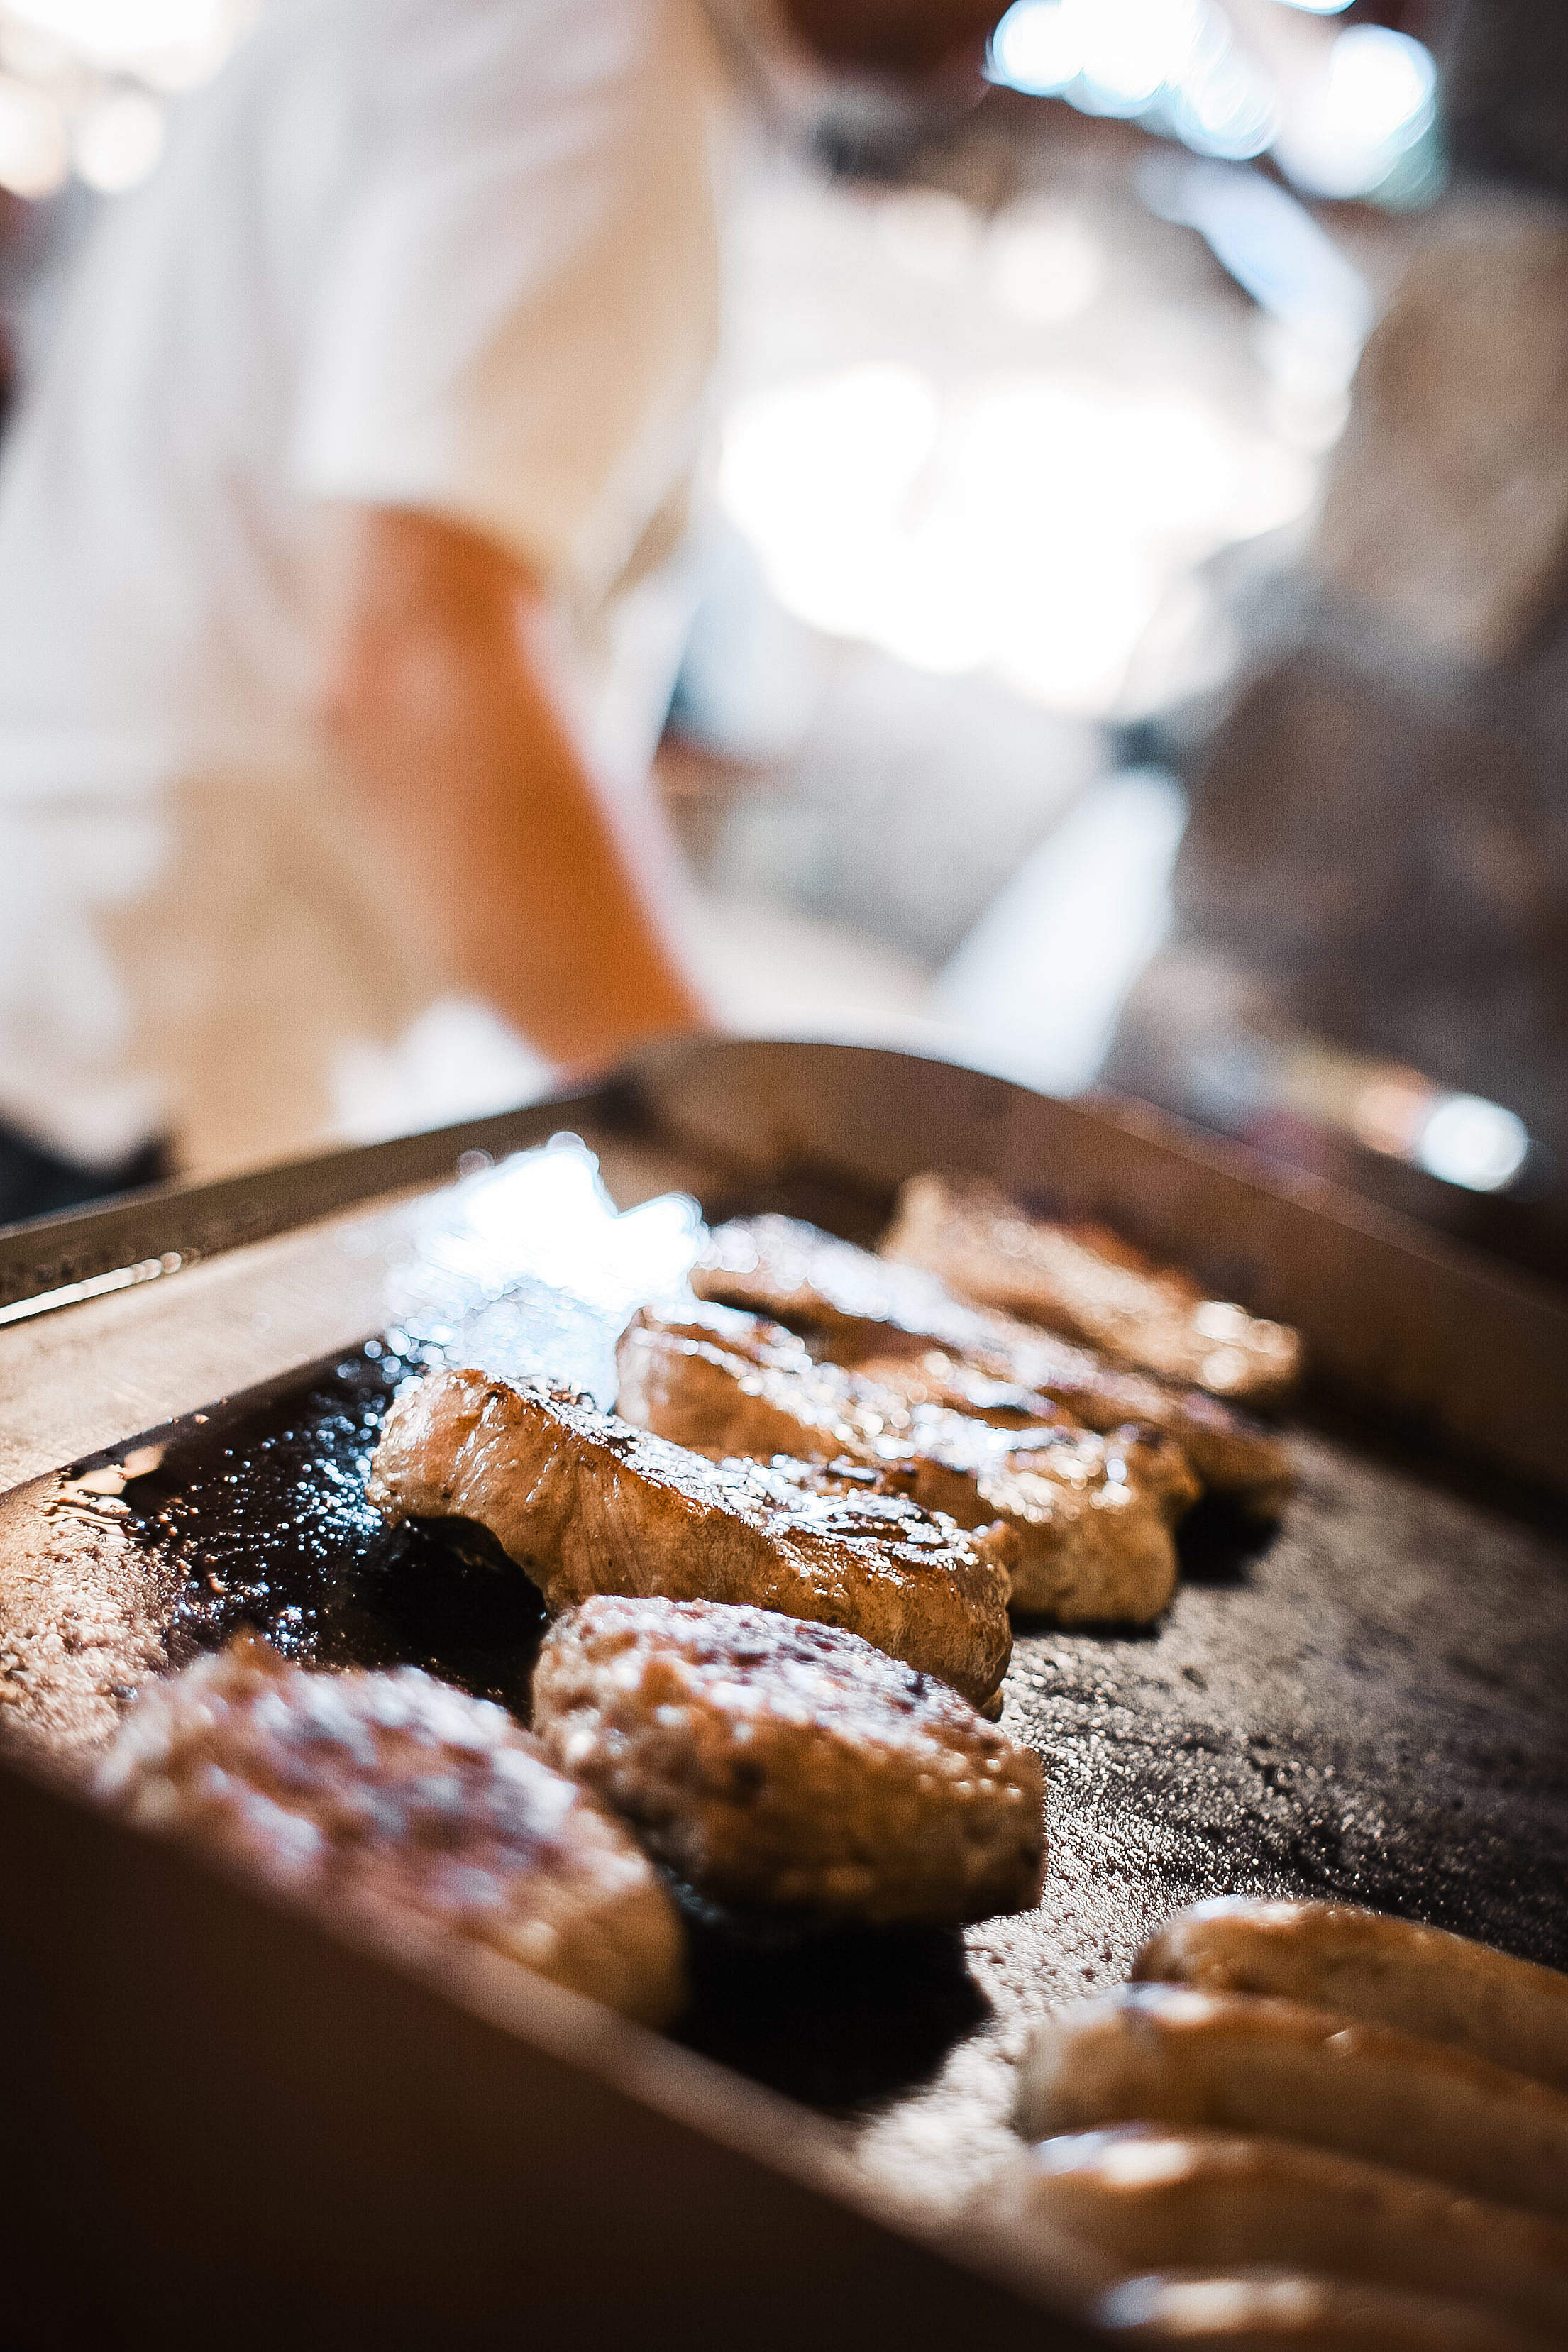 Steak on a Grill Free Stock Photo